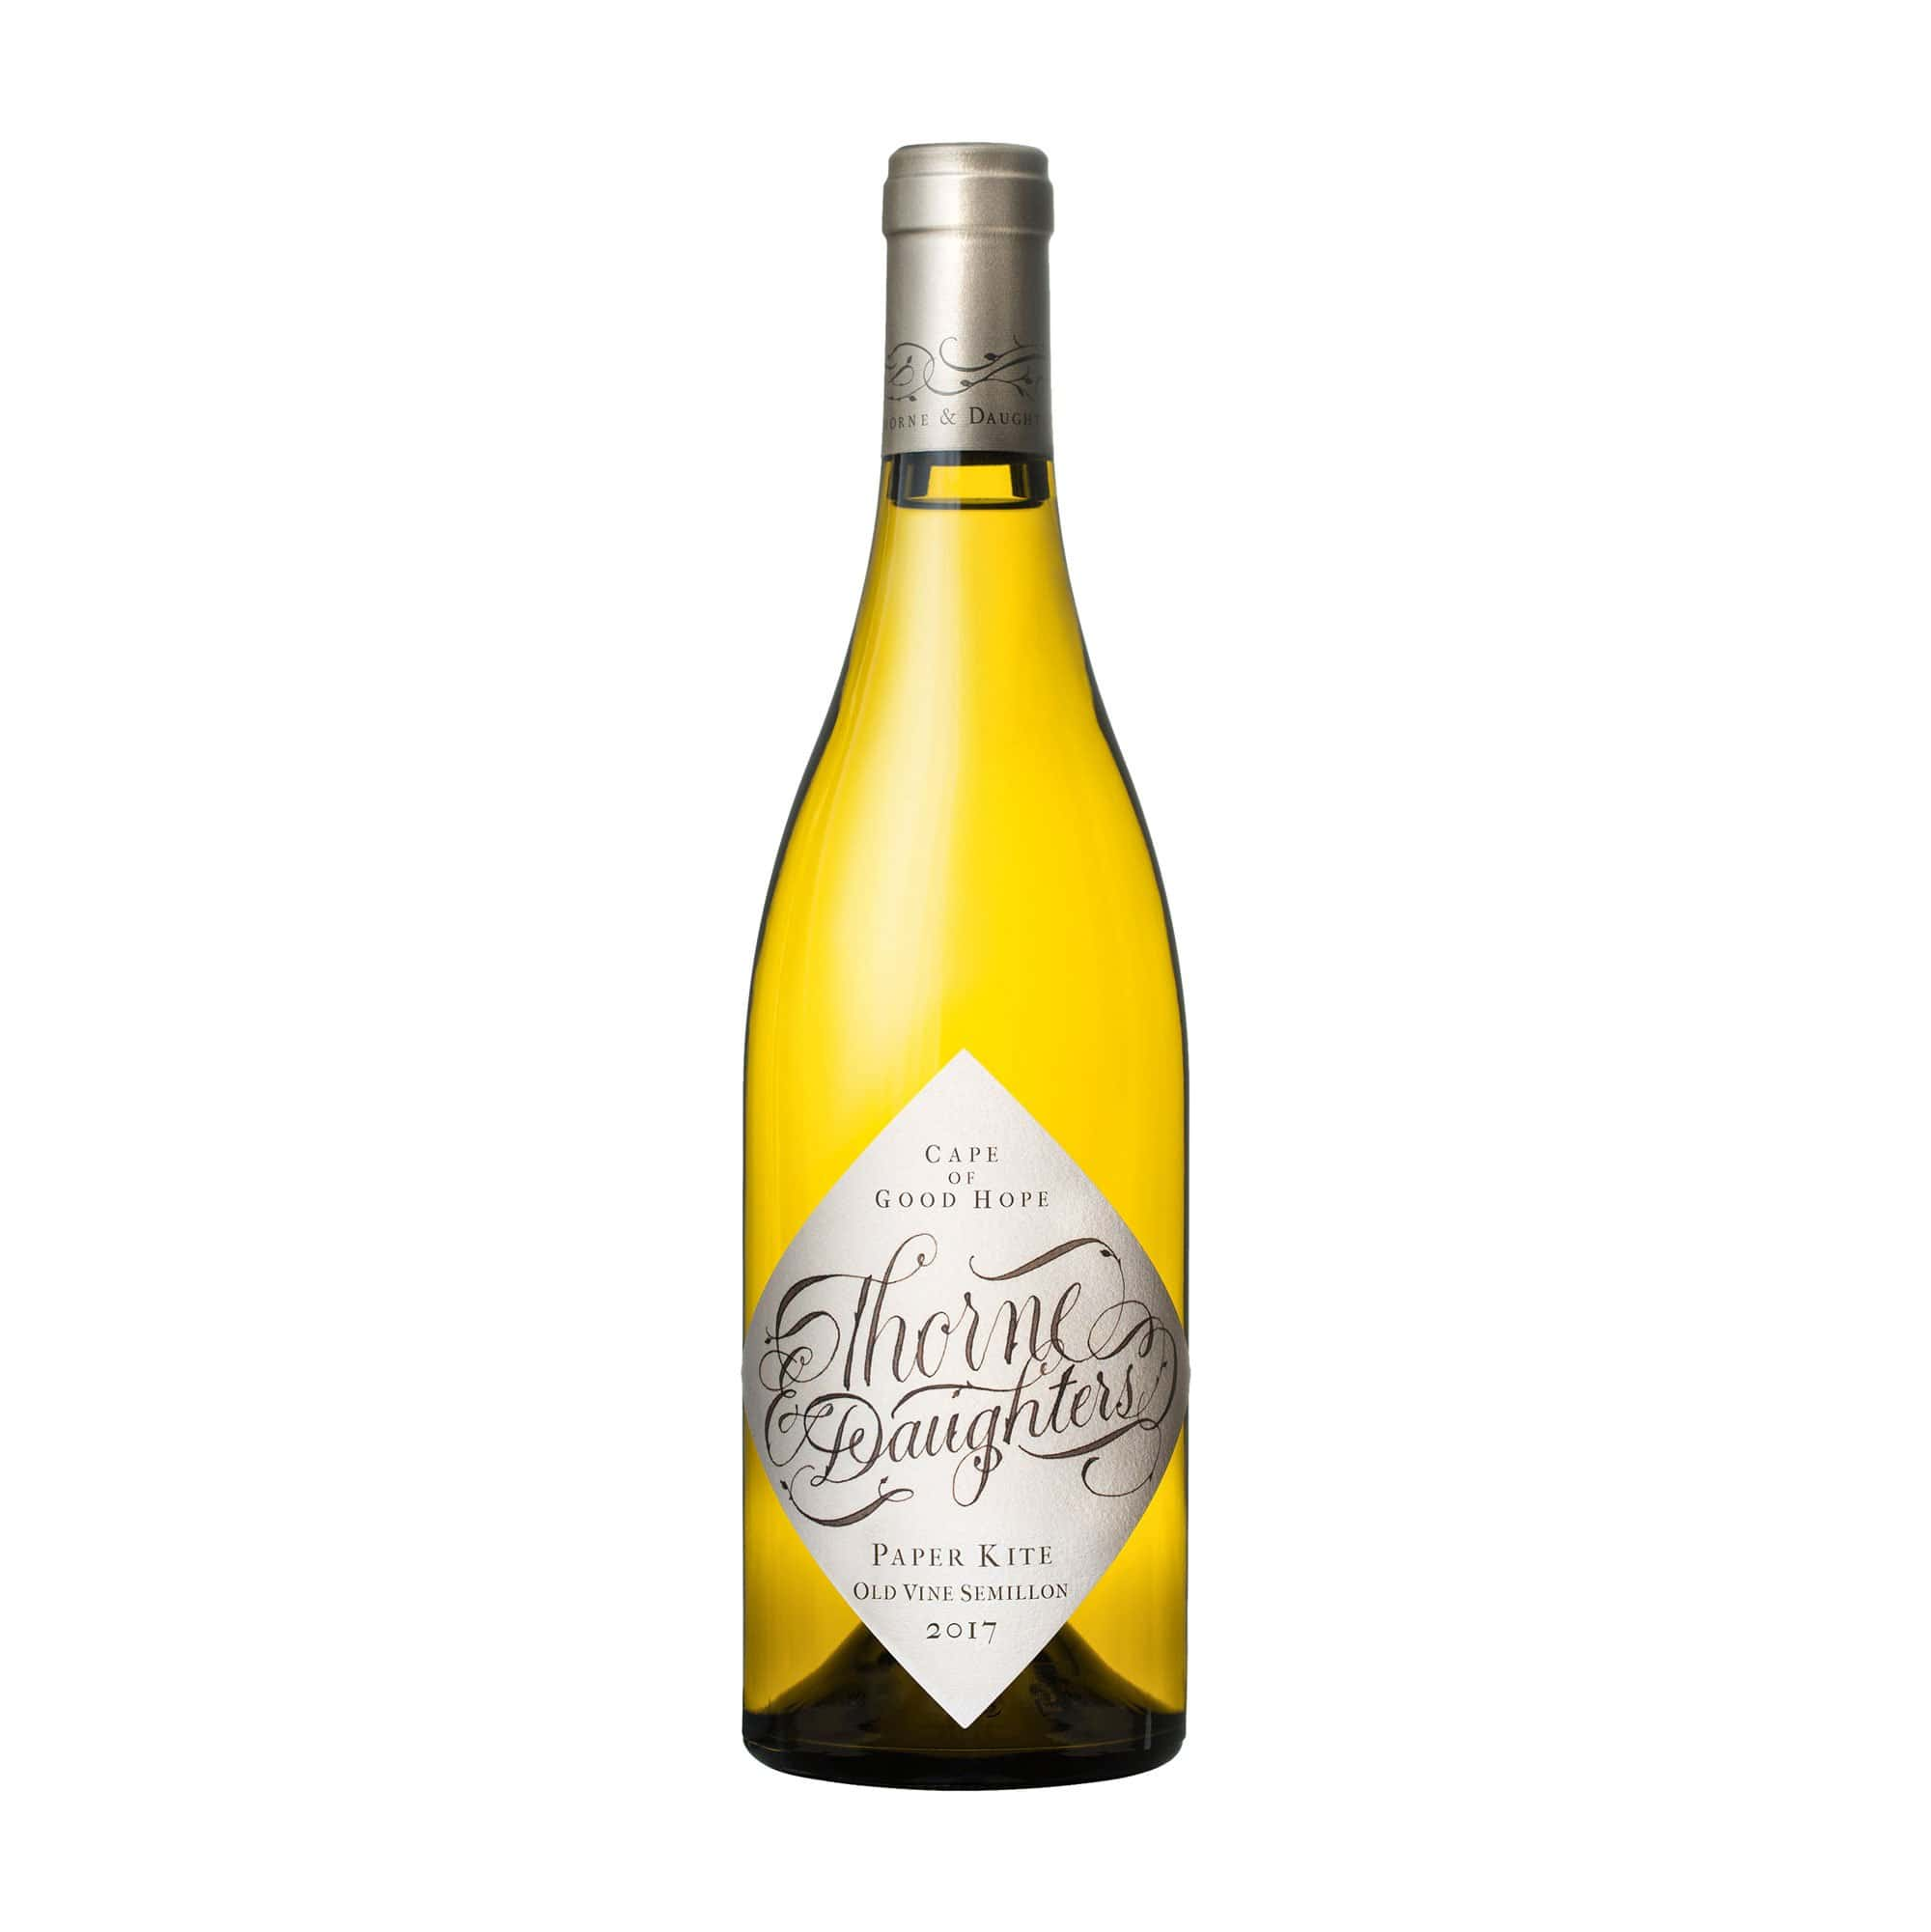 White Wine Thorne & Daughters Paper Kite Semillon Blanc Swartland 2019 (4531622150167)